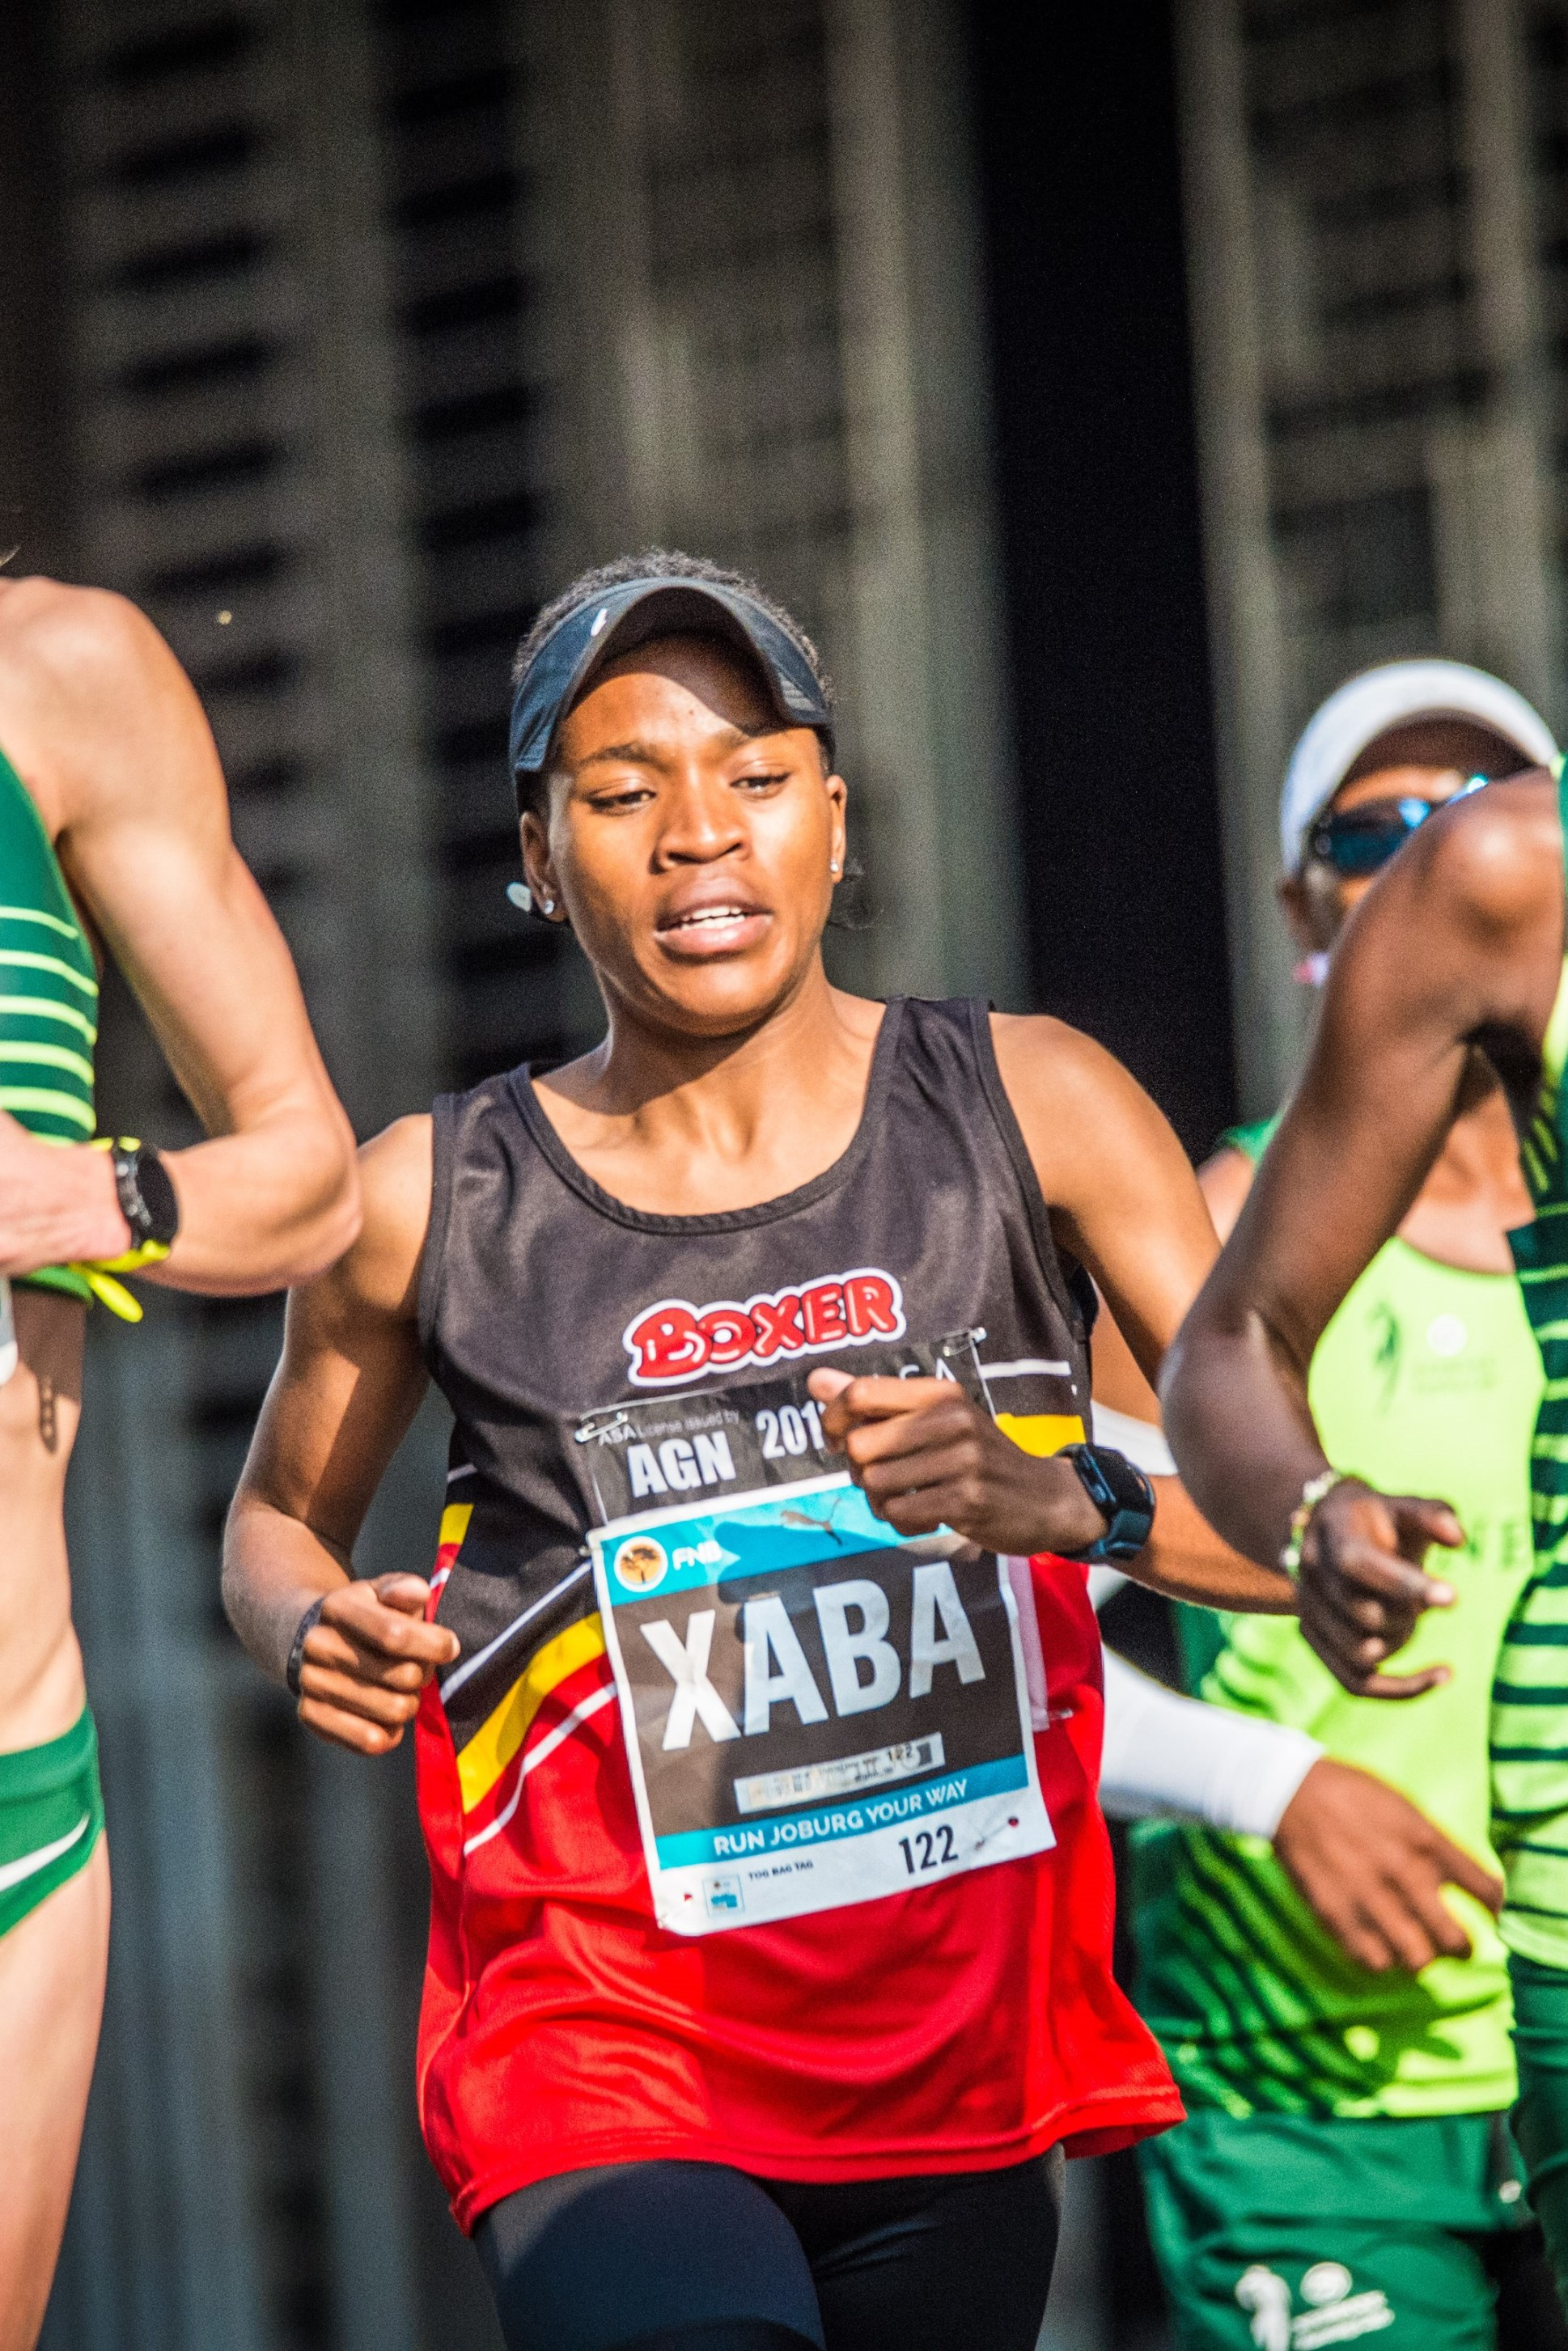 Glenrose Xaba in action at the 2018 FNB Joburg 10K CITYRUN, a sister event to the FNB Cape Town 12 ONERUN.  Photo Credit:  Tobias Ginsberg